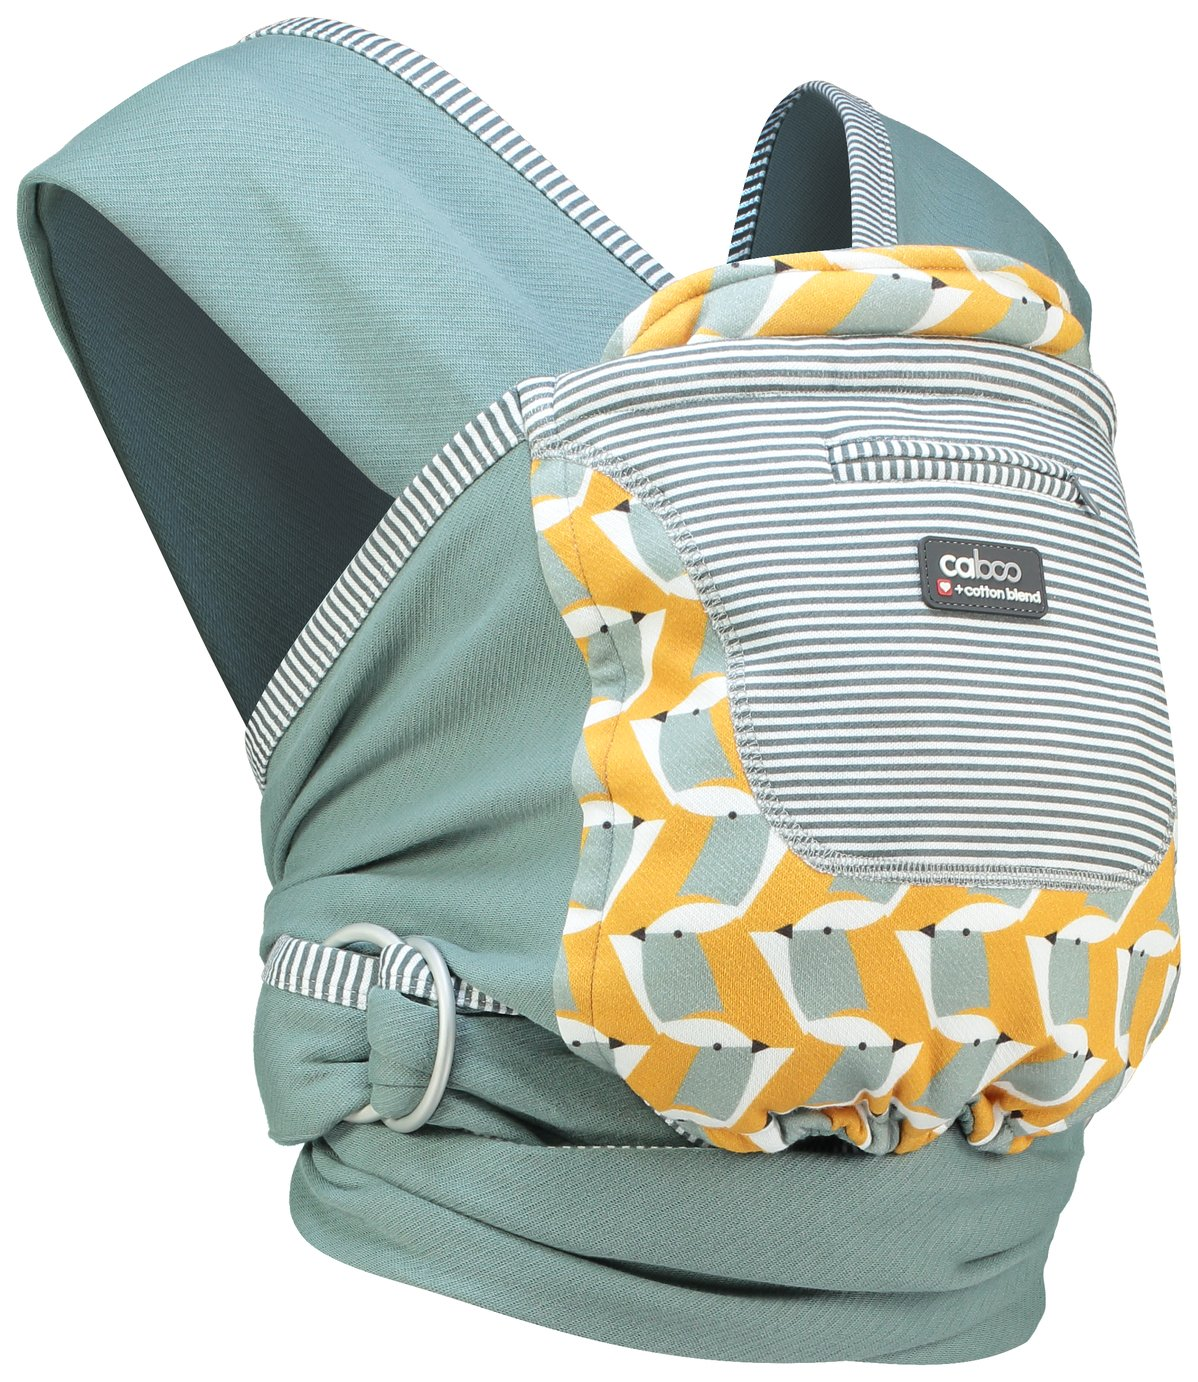 Caboo + Cotton Blend Ava Baby Carrier